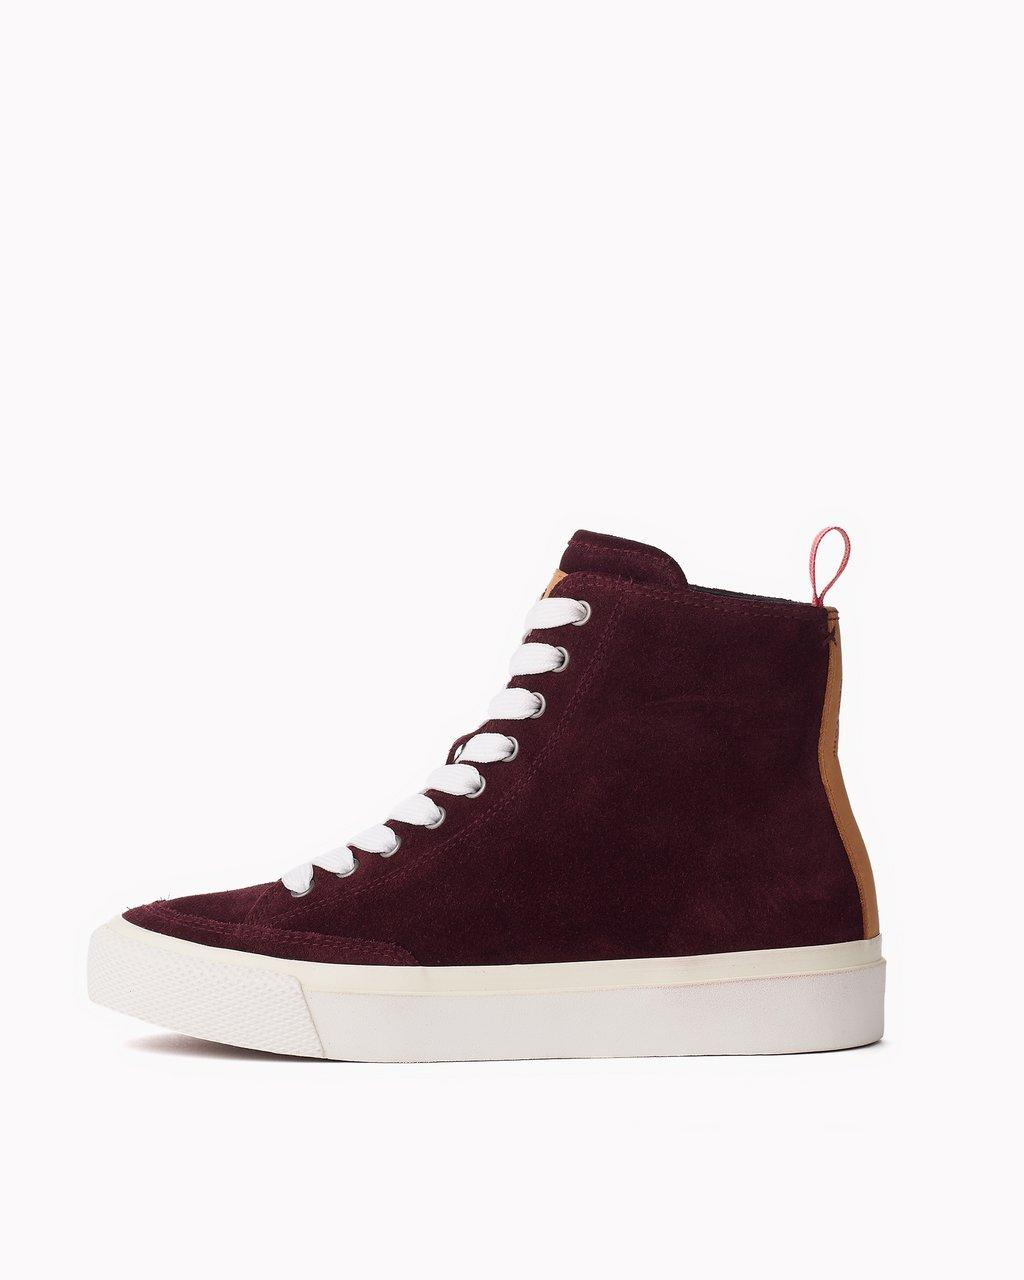 RB HIGH TOP